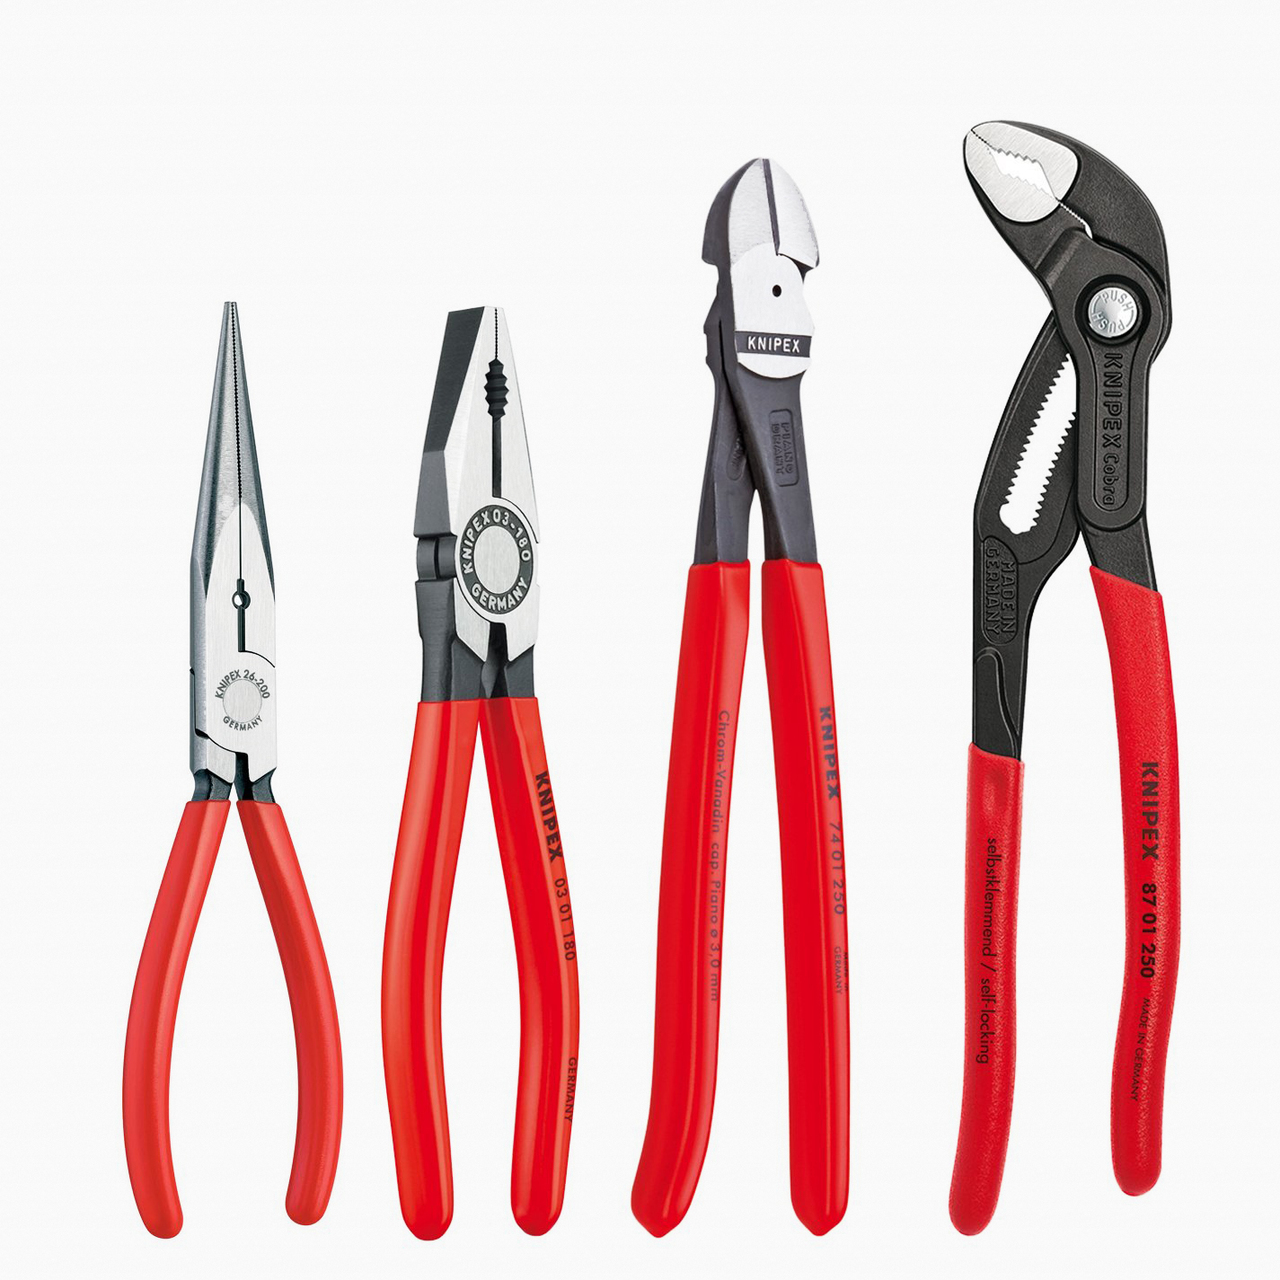 Knipex 9K-00-80-94-US 4 Pc Pliers and Cutter Set - KC Tool